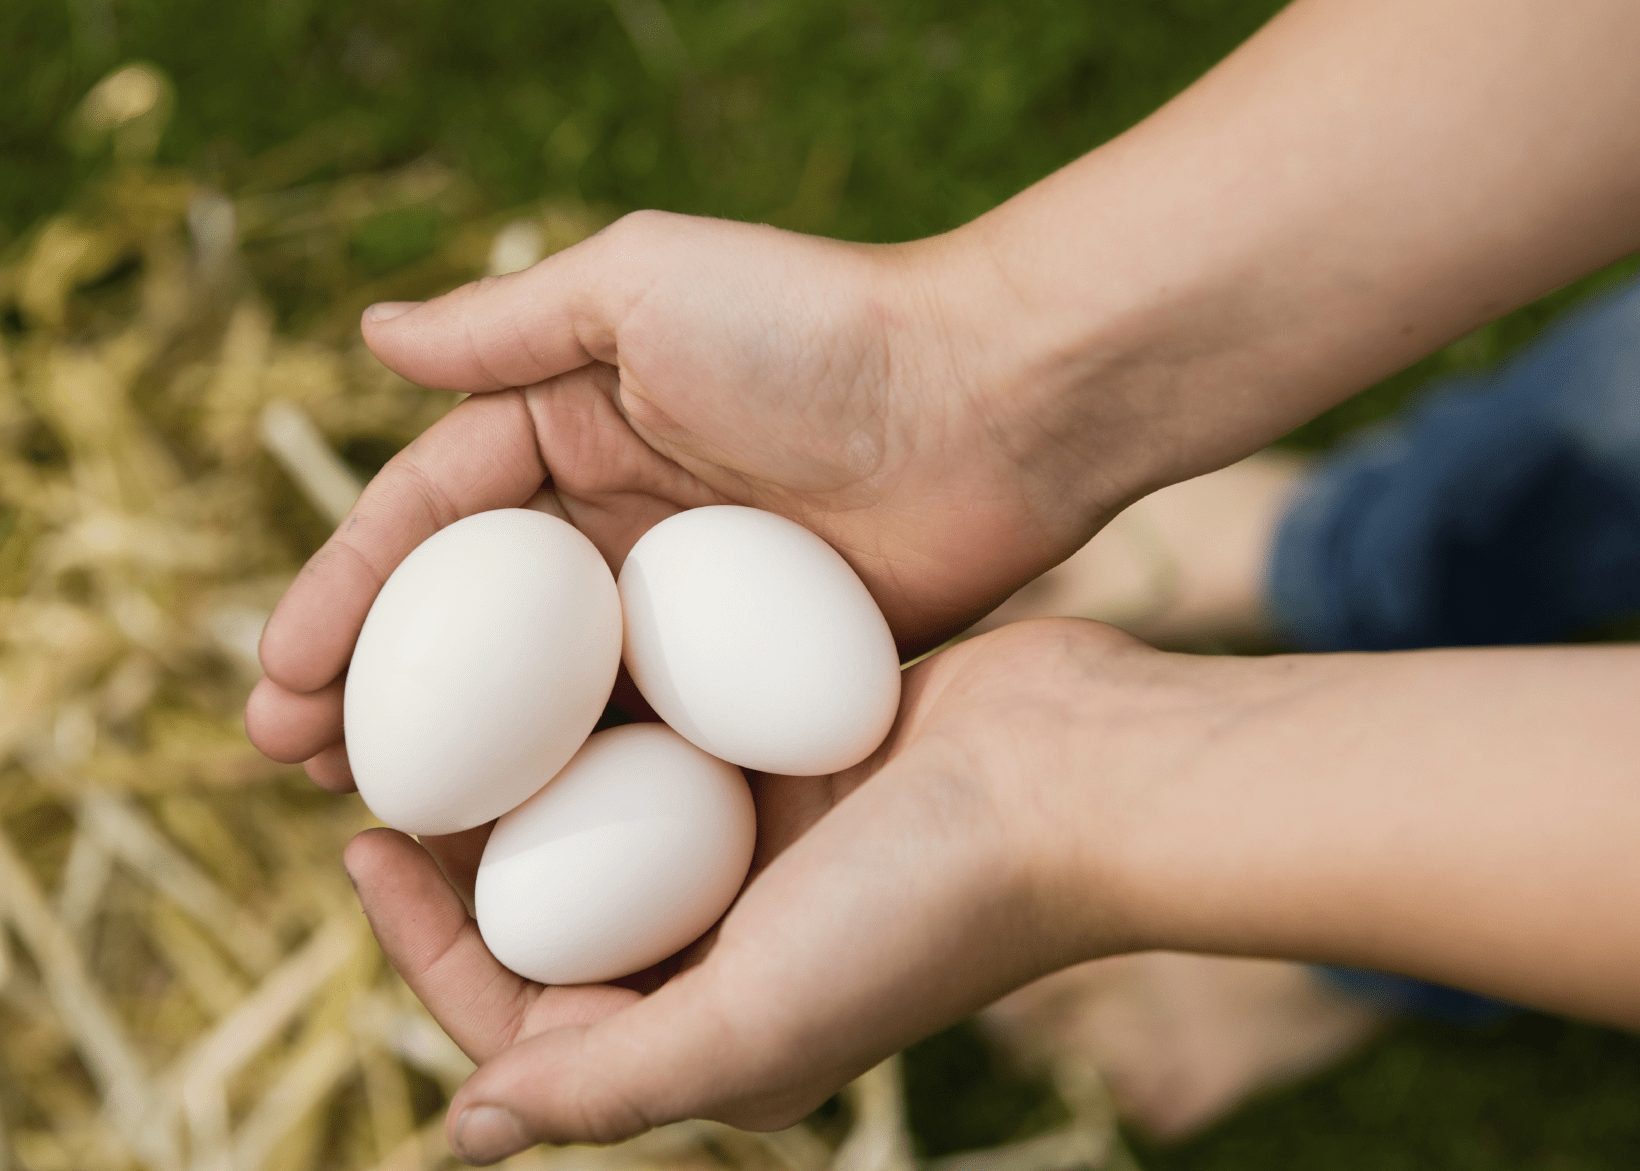 Polish chicken eggs color is white, they can produce eggs about 150 eggs per year.